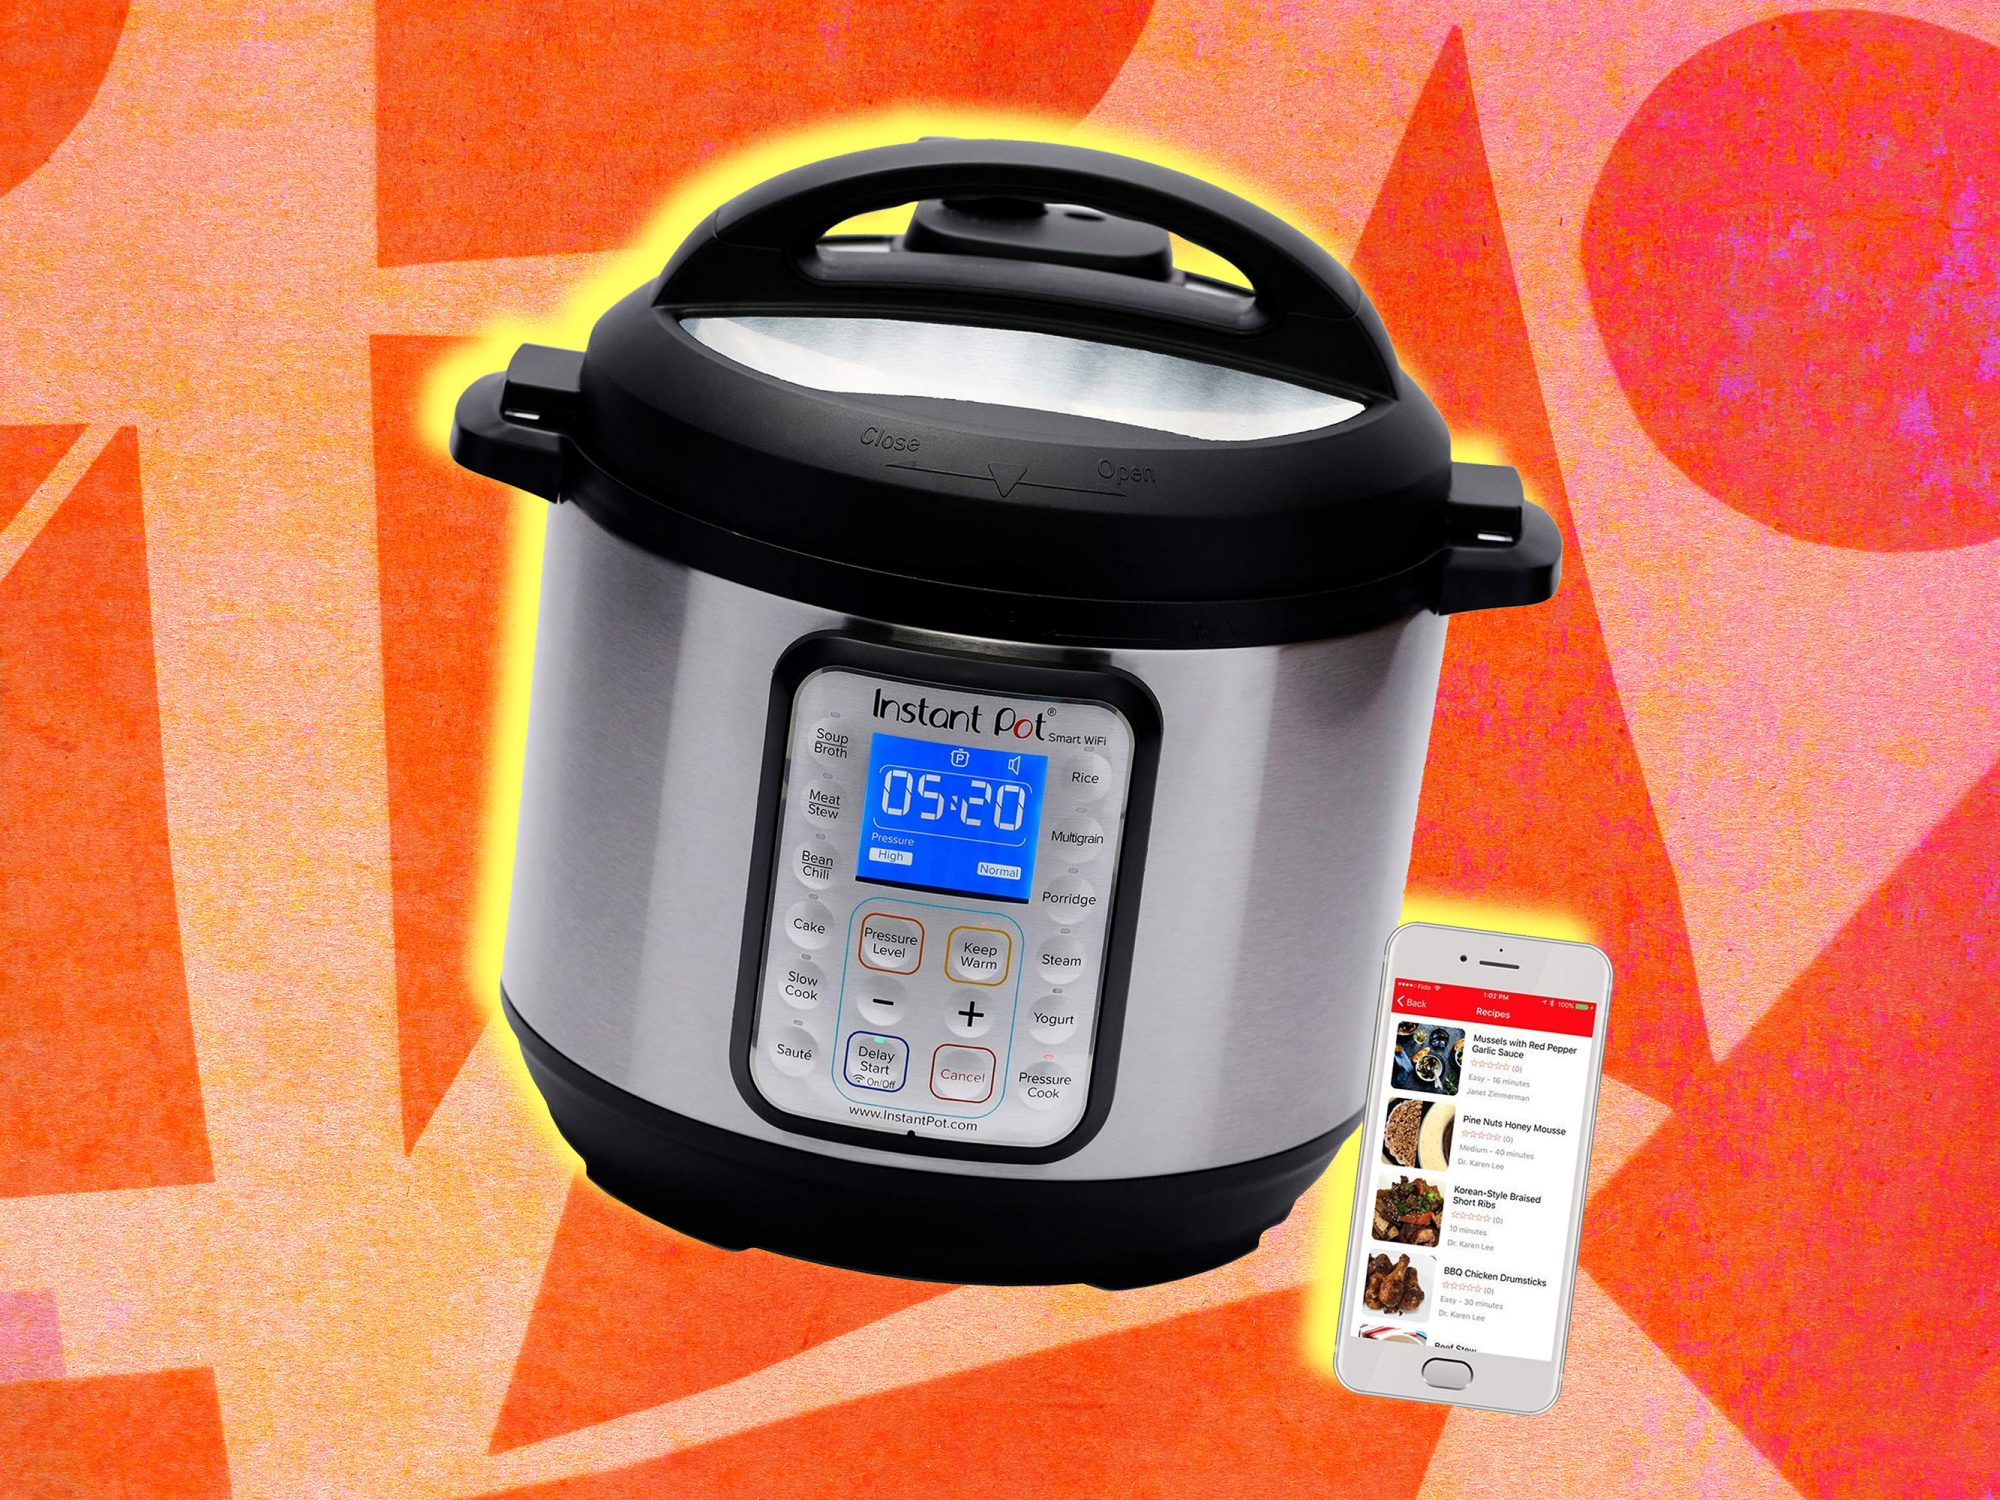 There's a New Instant Pot That Can Be Controlled From Your Phone